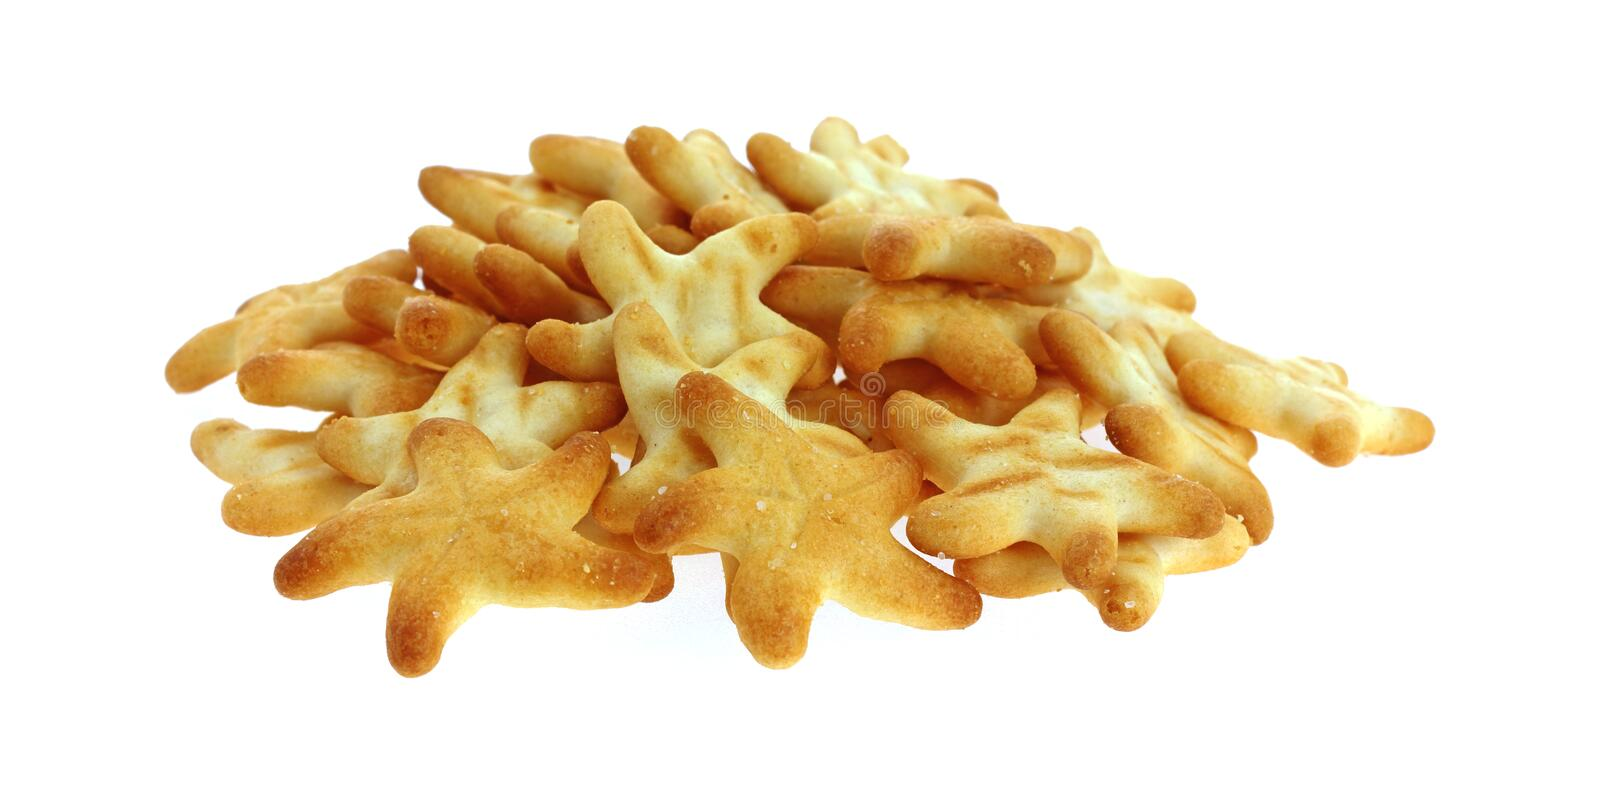 Download Generic Cheese Star Crackers Stock Image - Image: 23414127